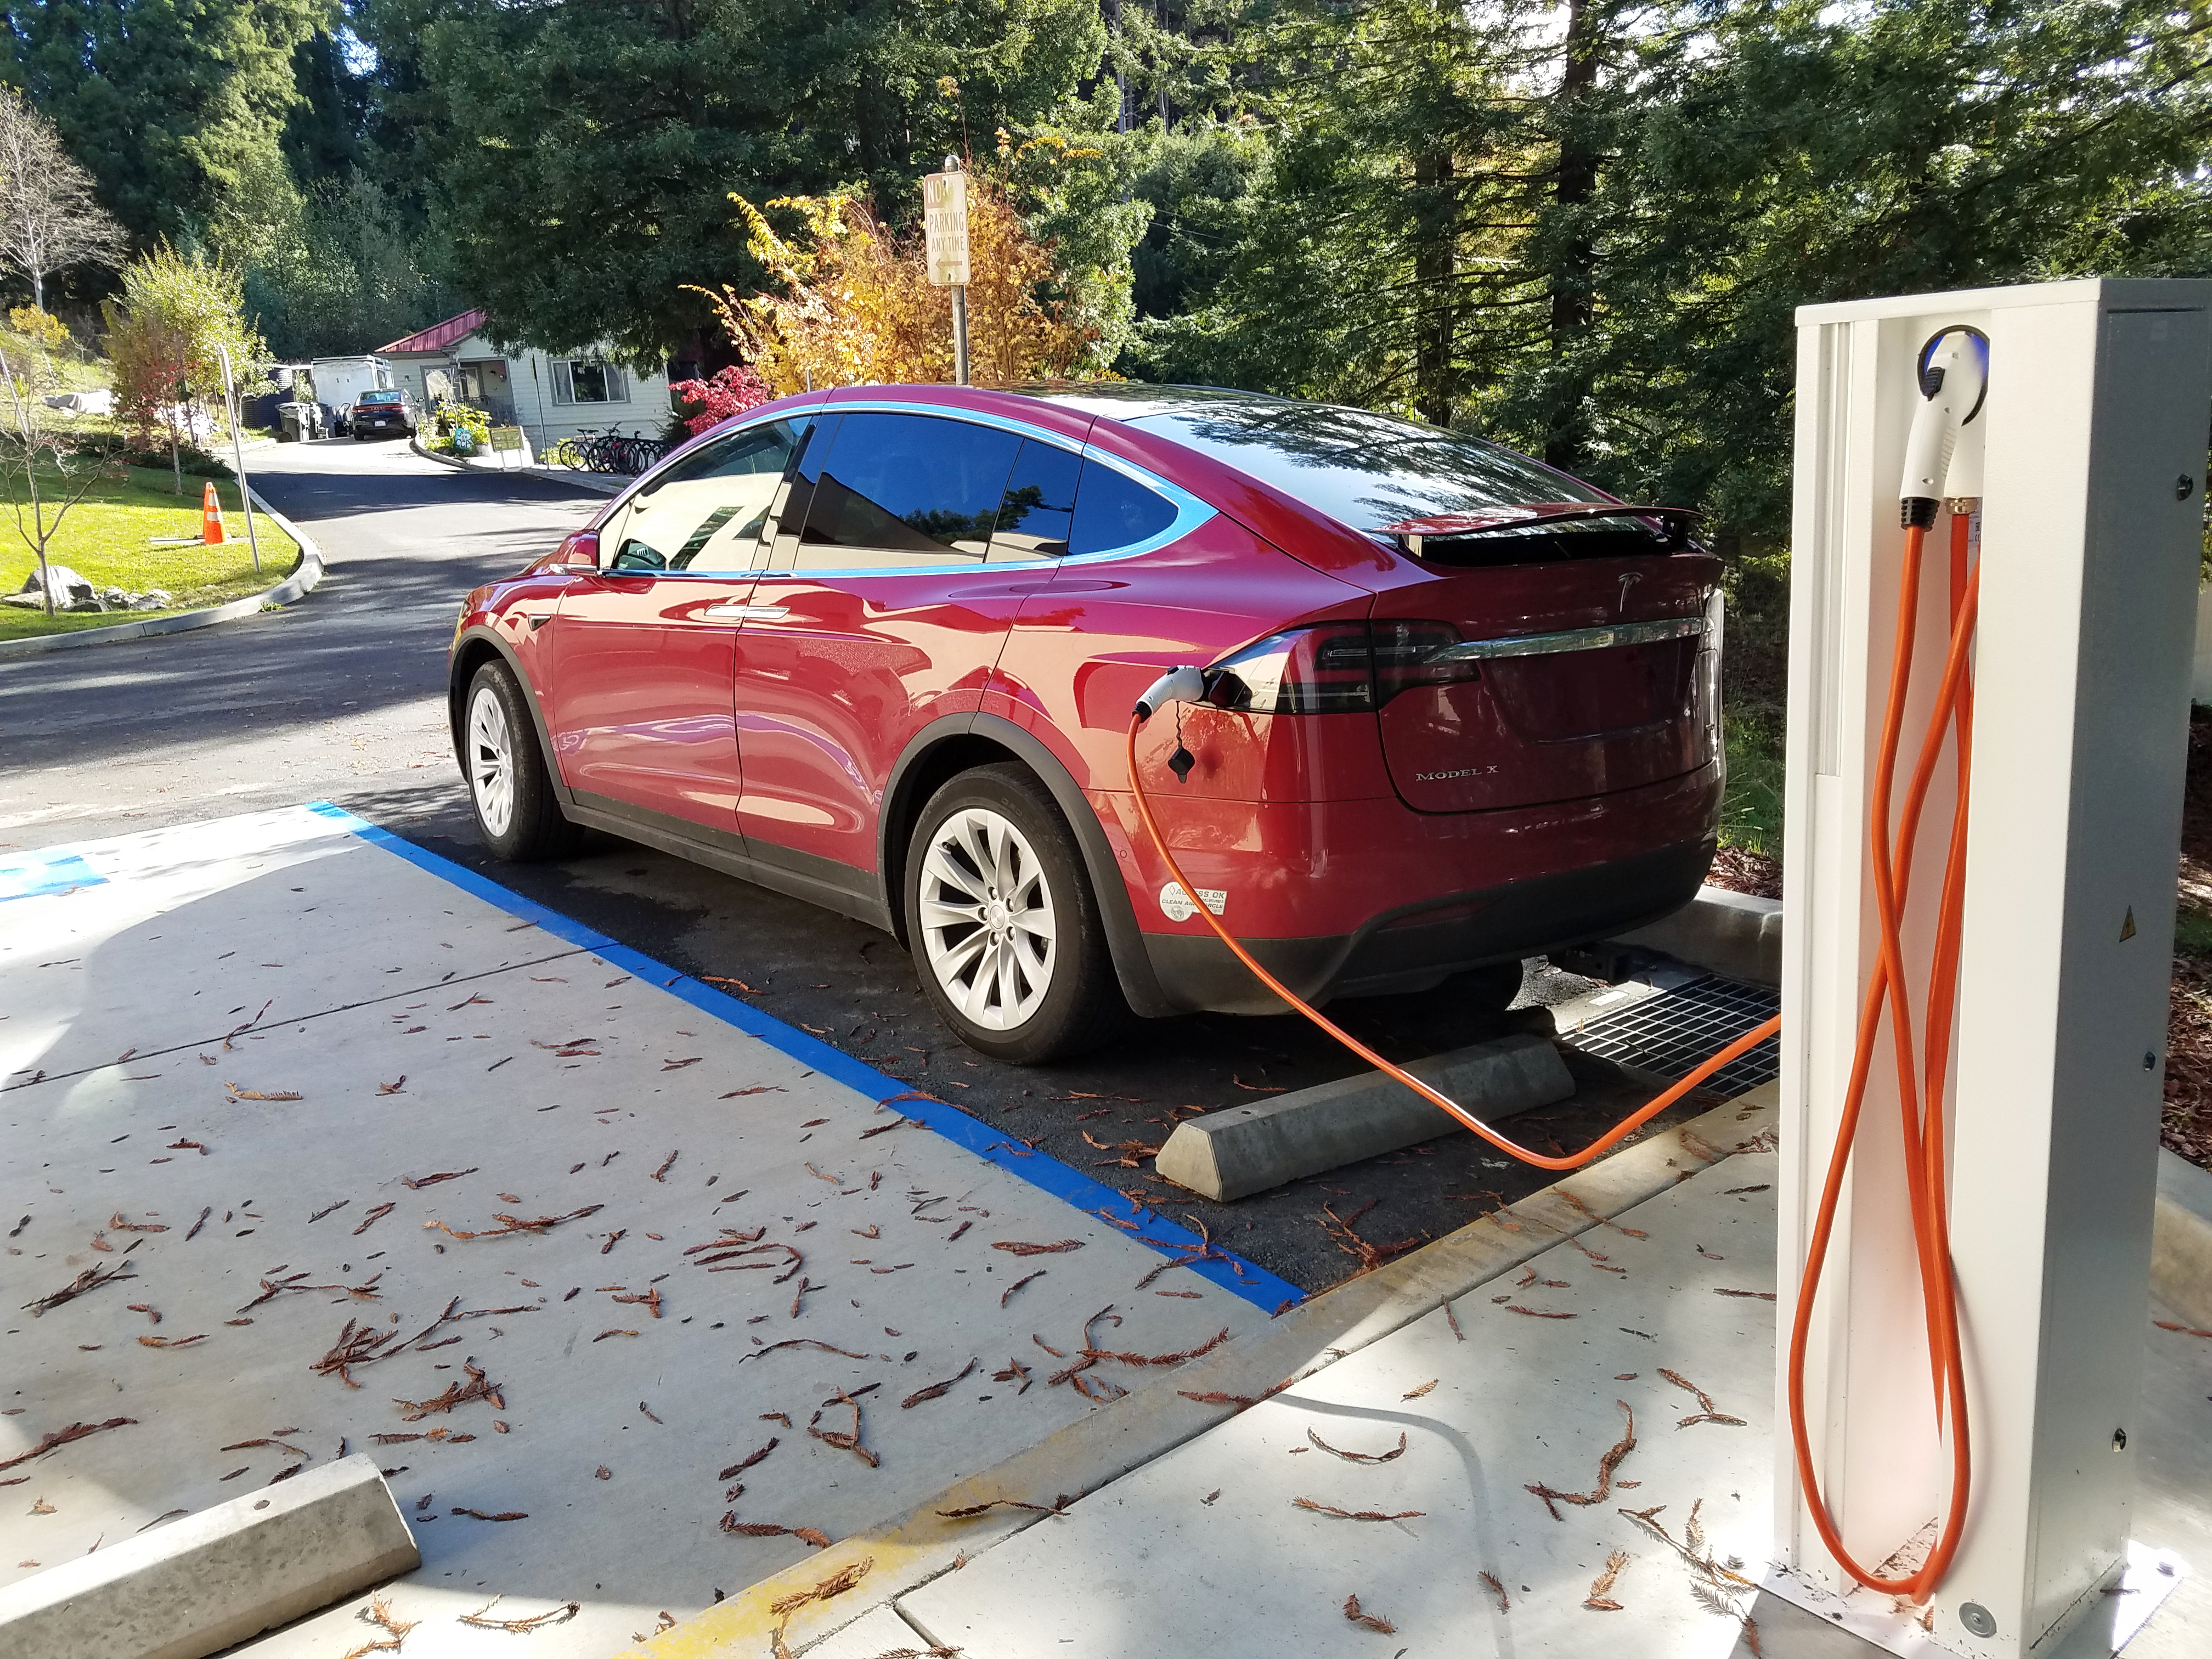 A red Tesla is charging at the Schatz EV station.